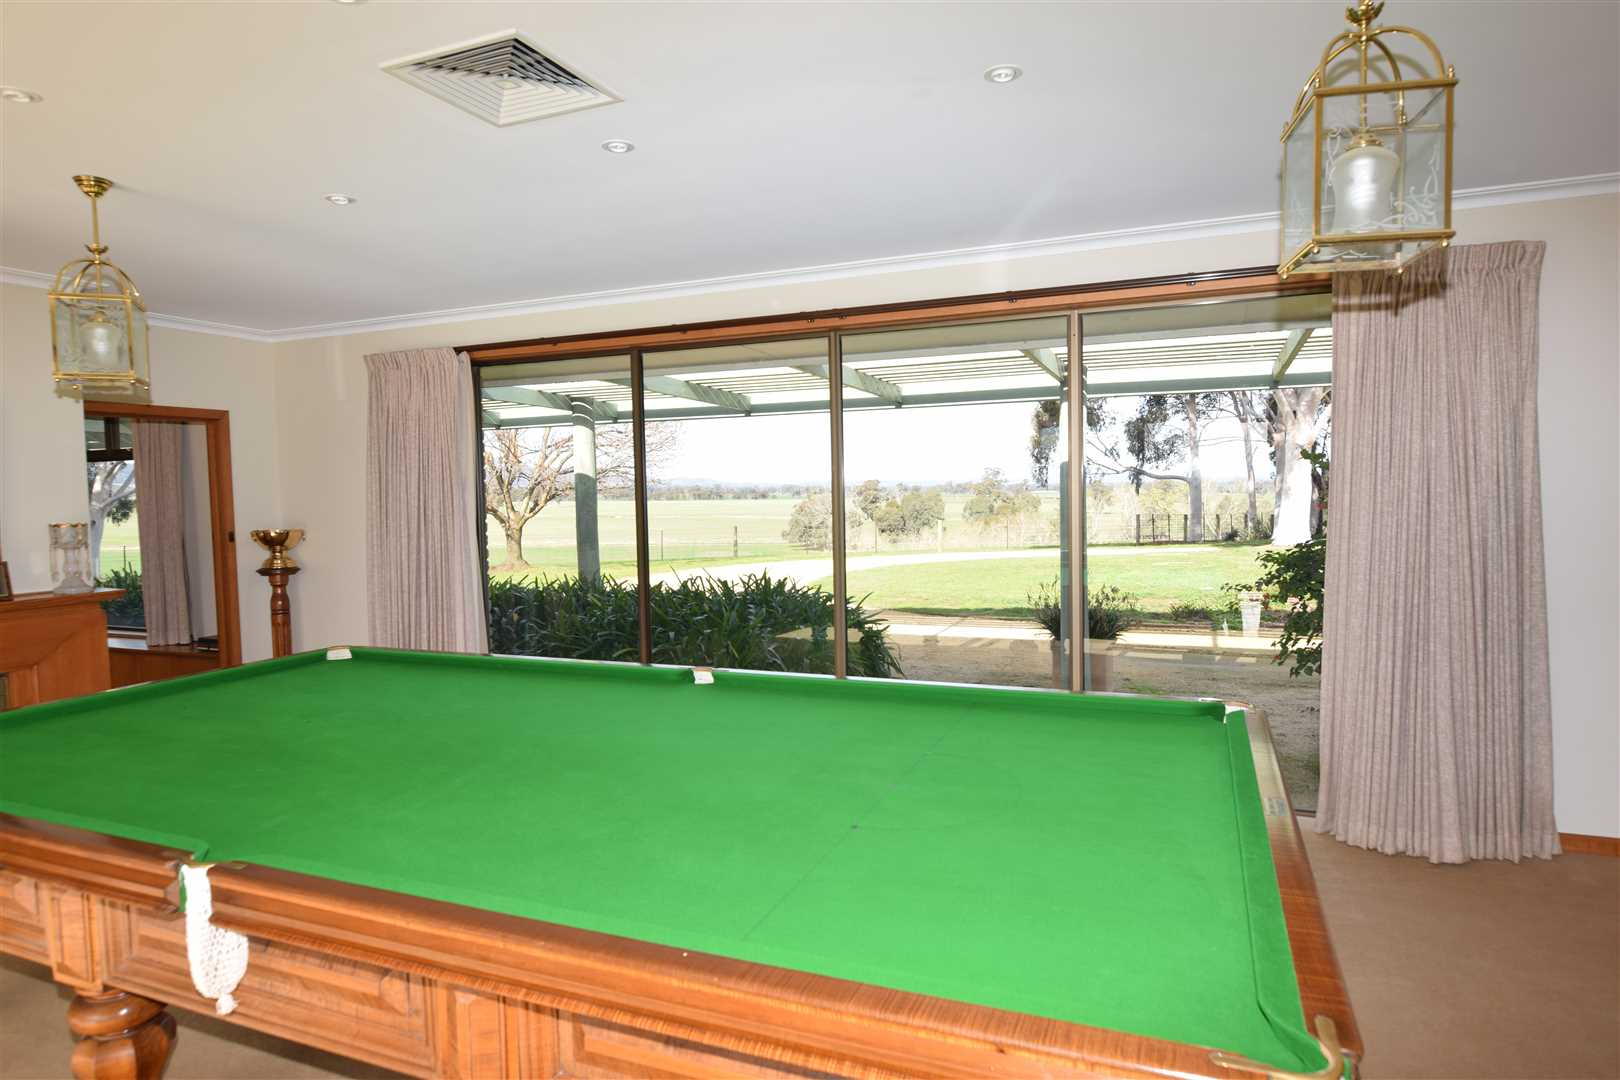 Billiard Room to East